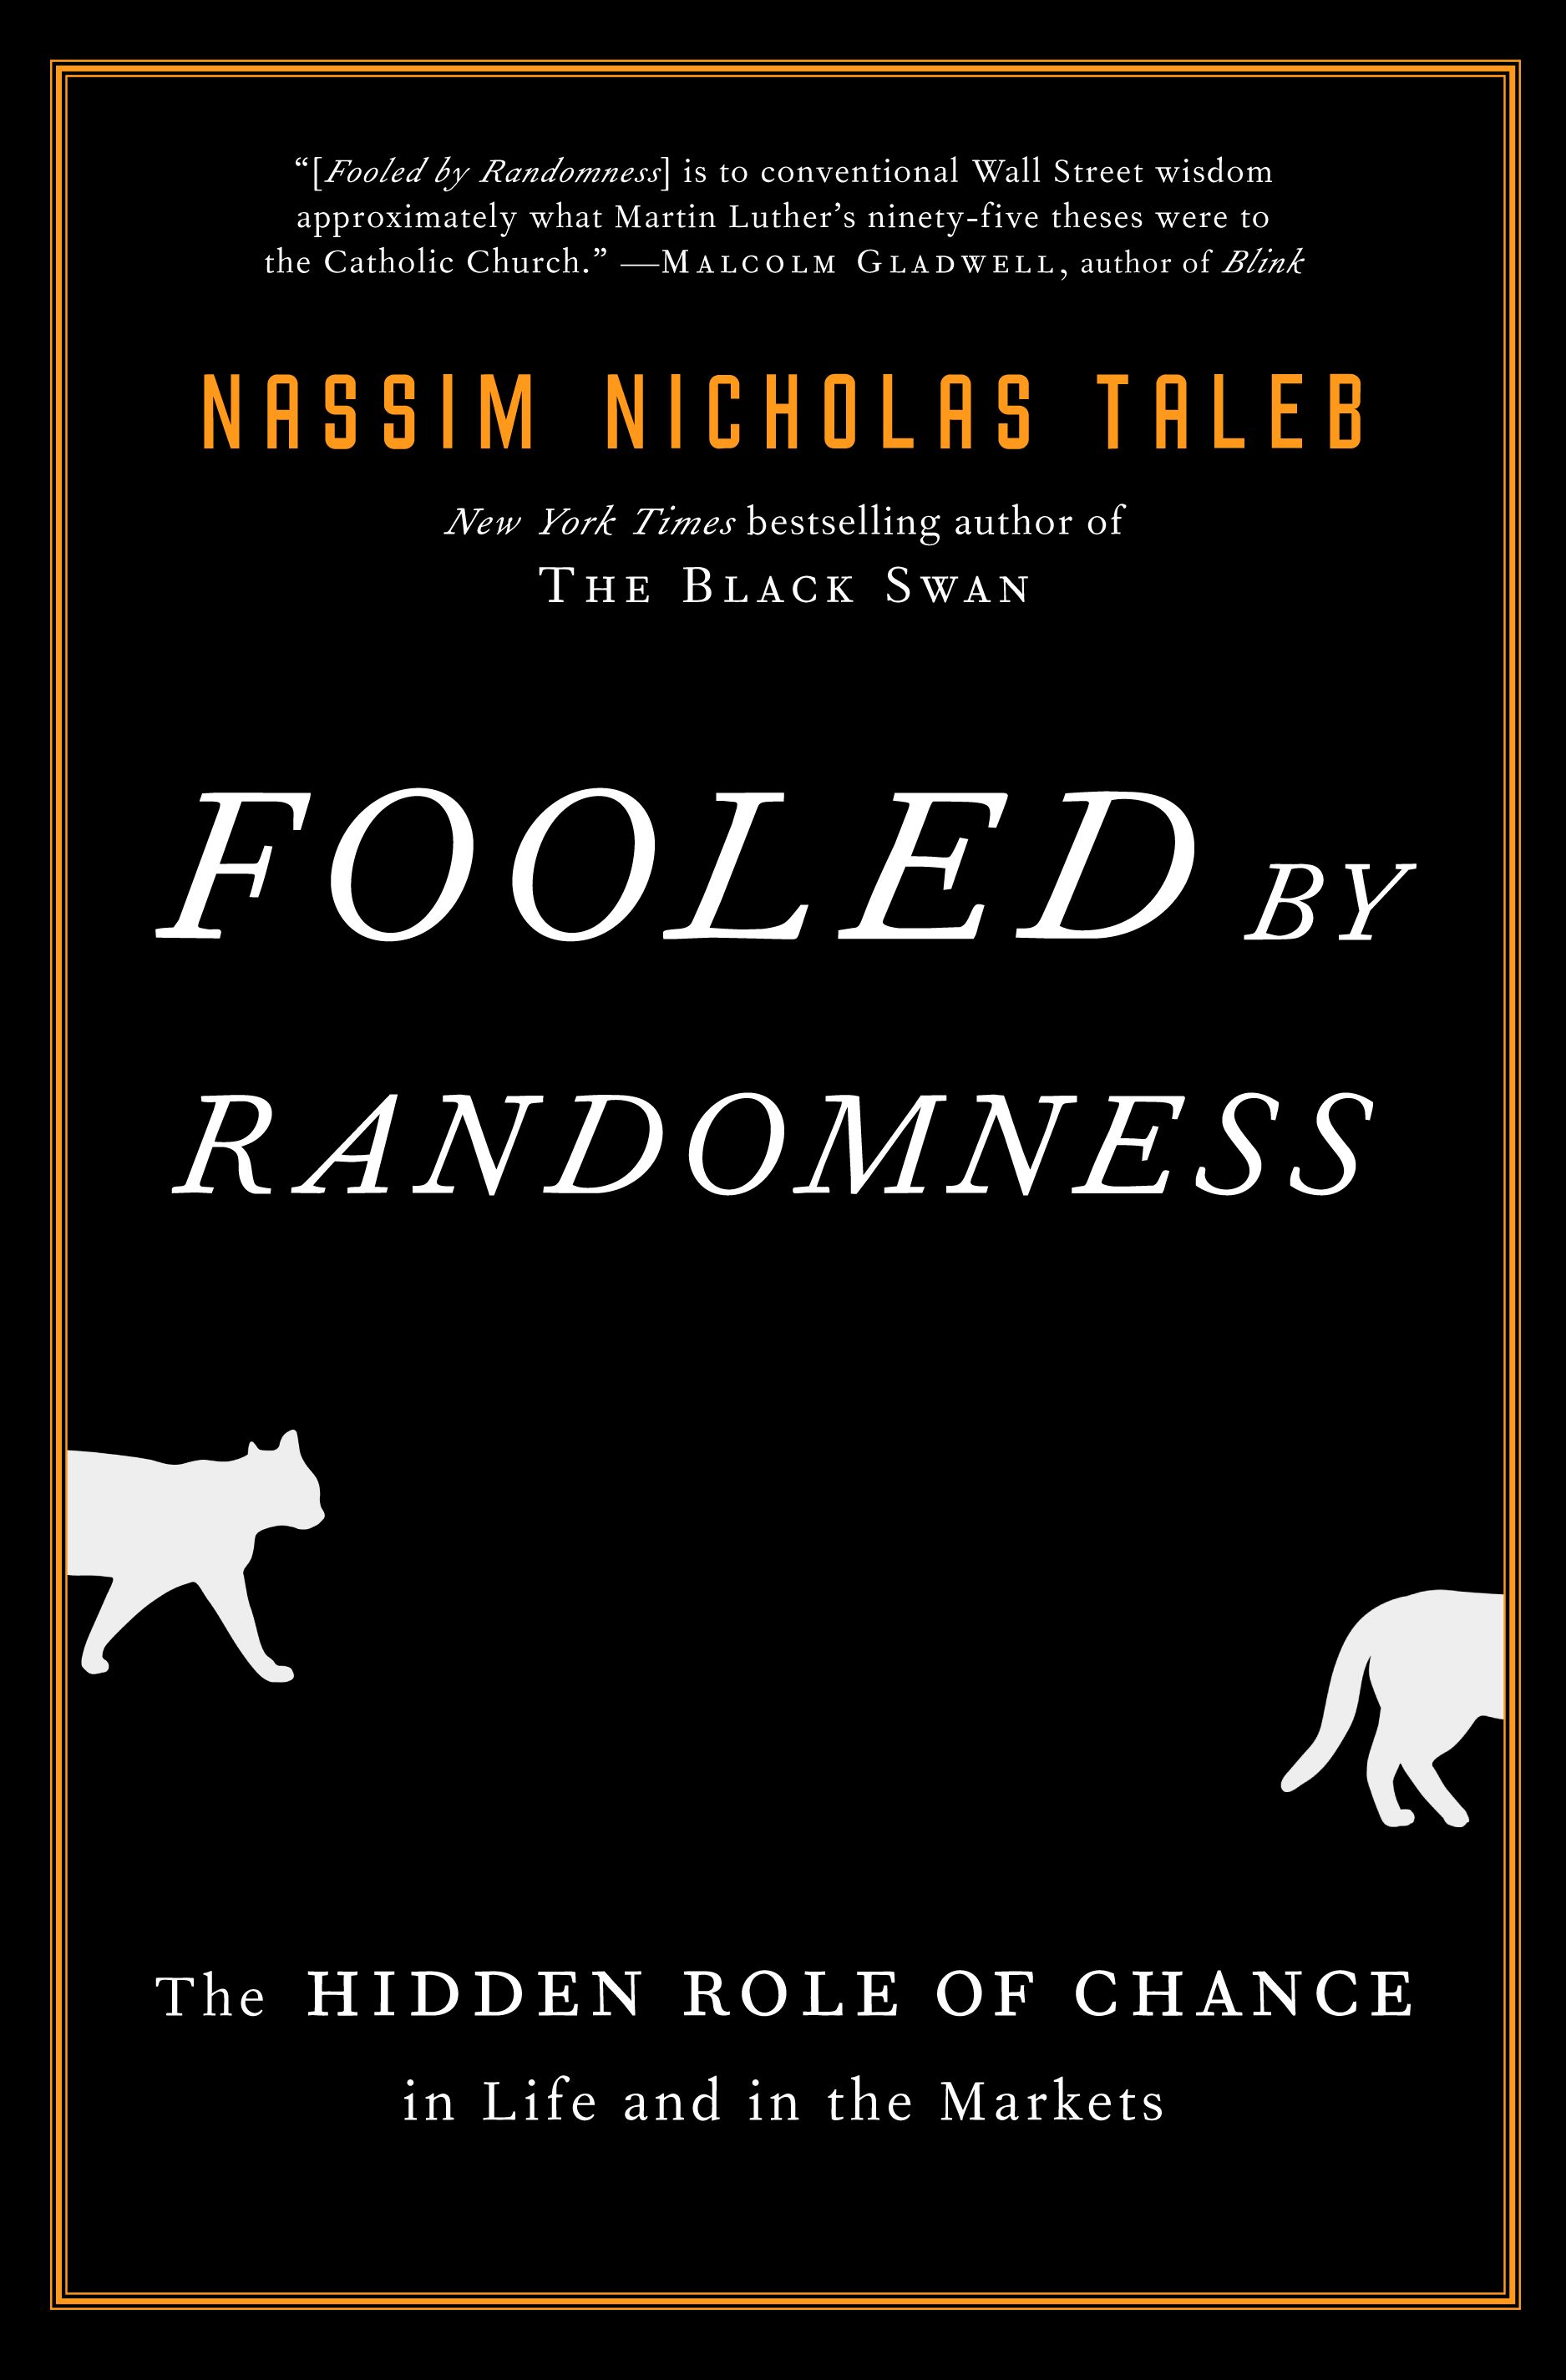 Fooled by Randomness  by Nassim Nicholas Taleb